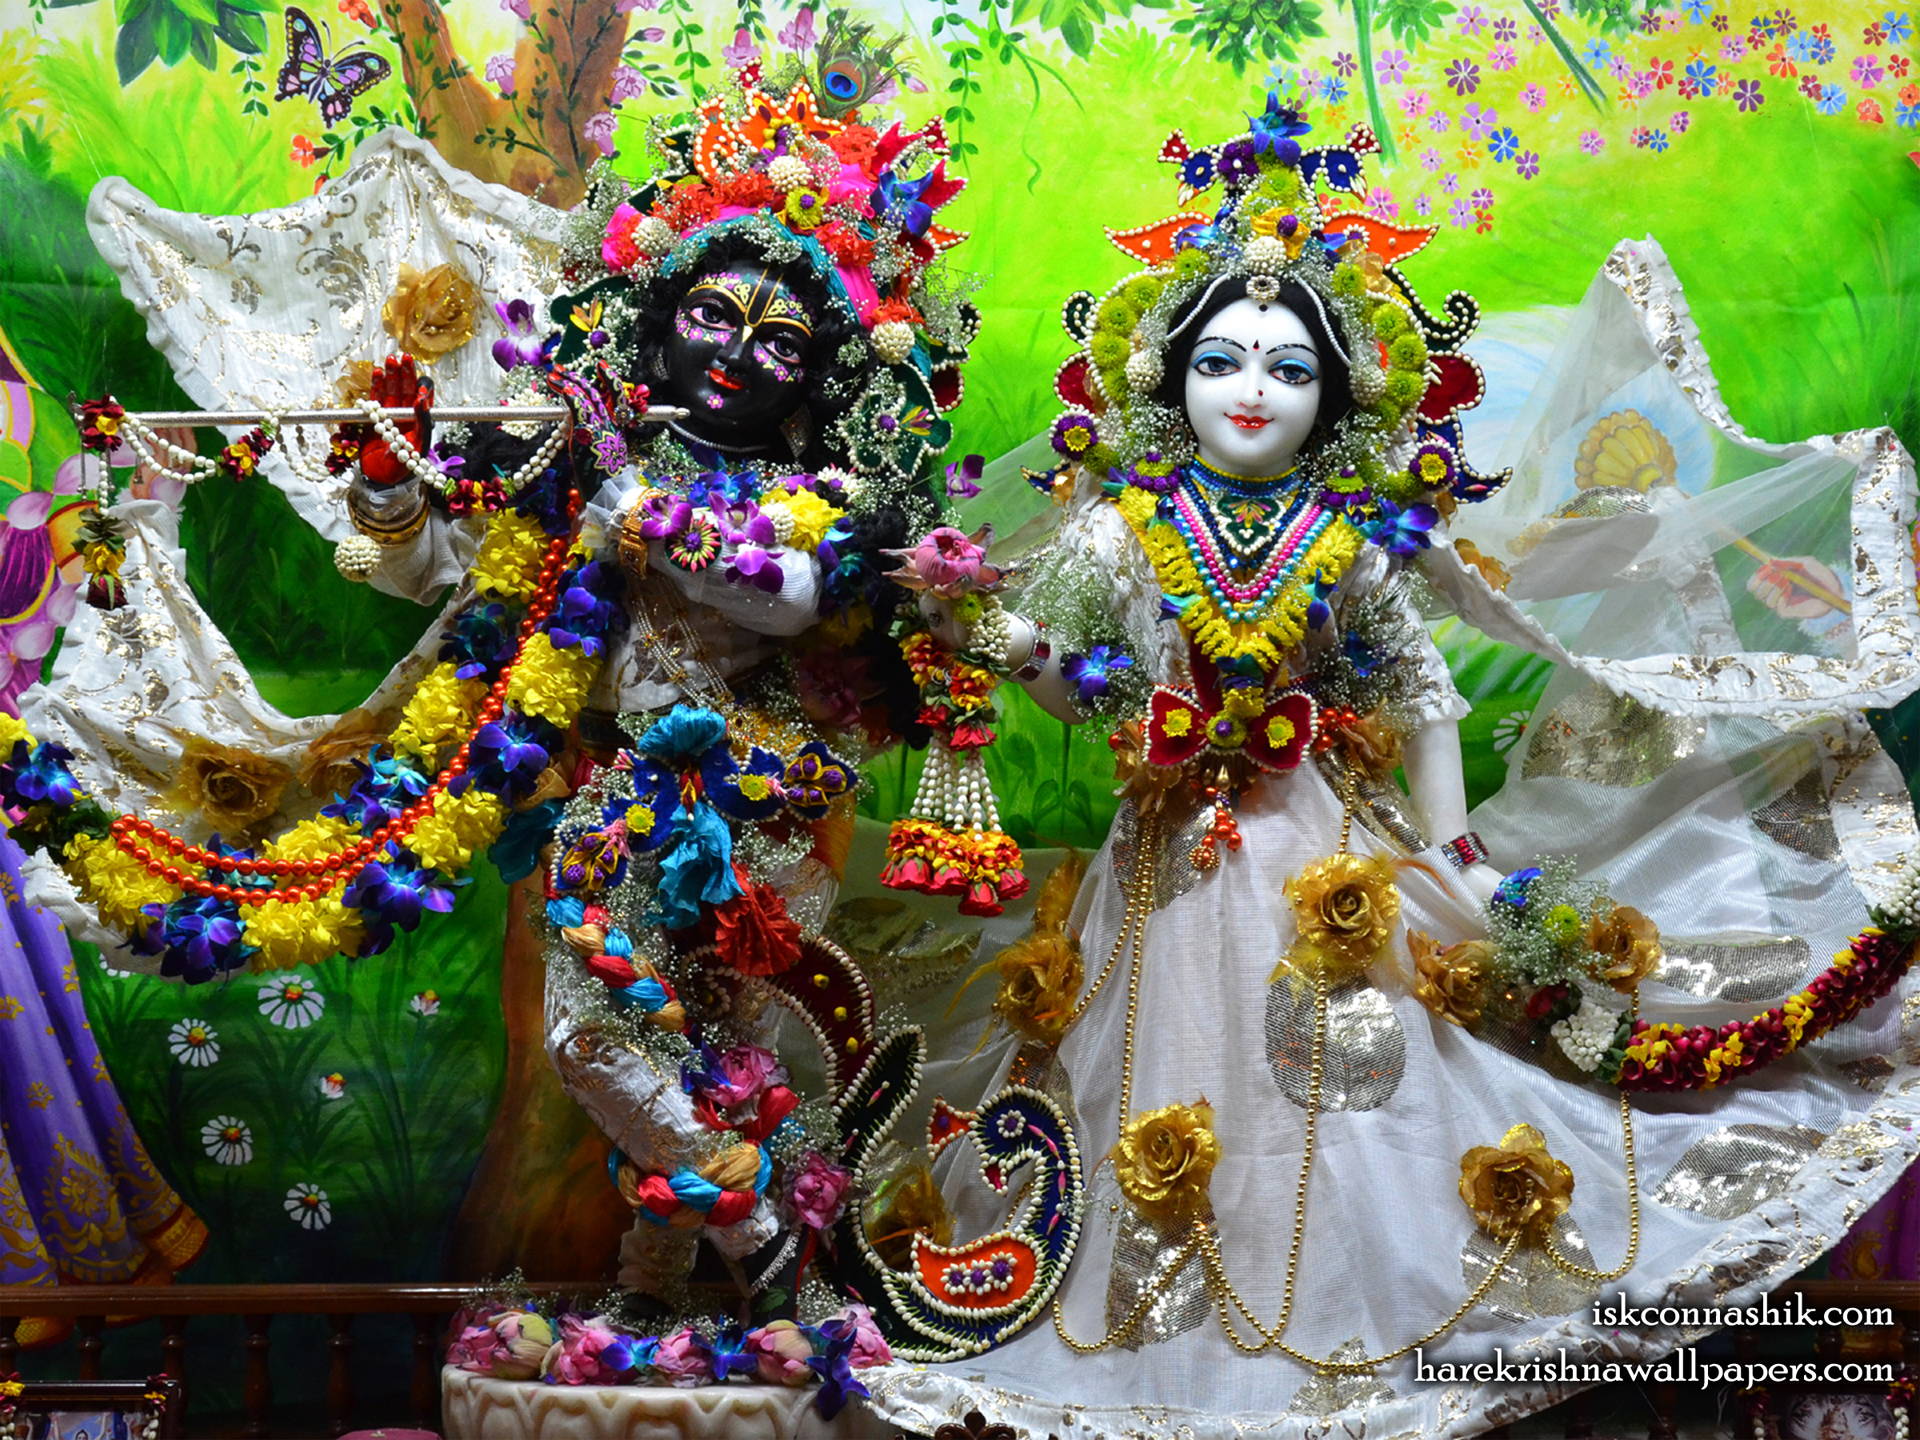 Sri Sri Radha Madan Gopal Wallpaper (015) Size 1920x1440 Download